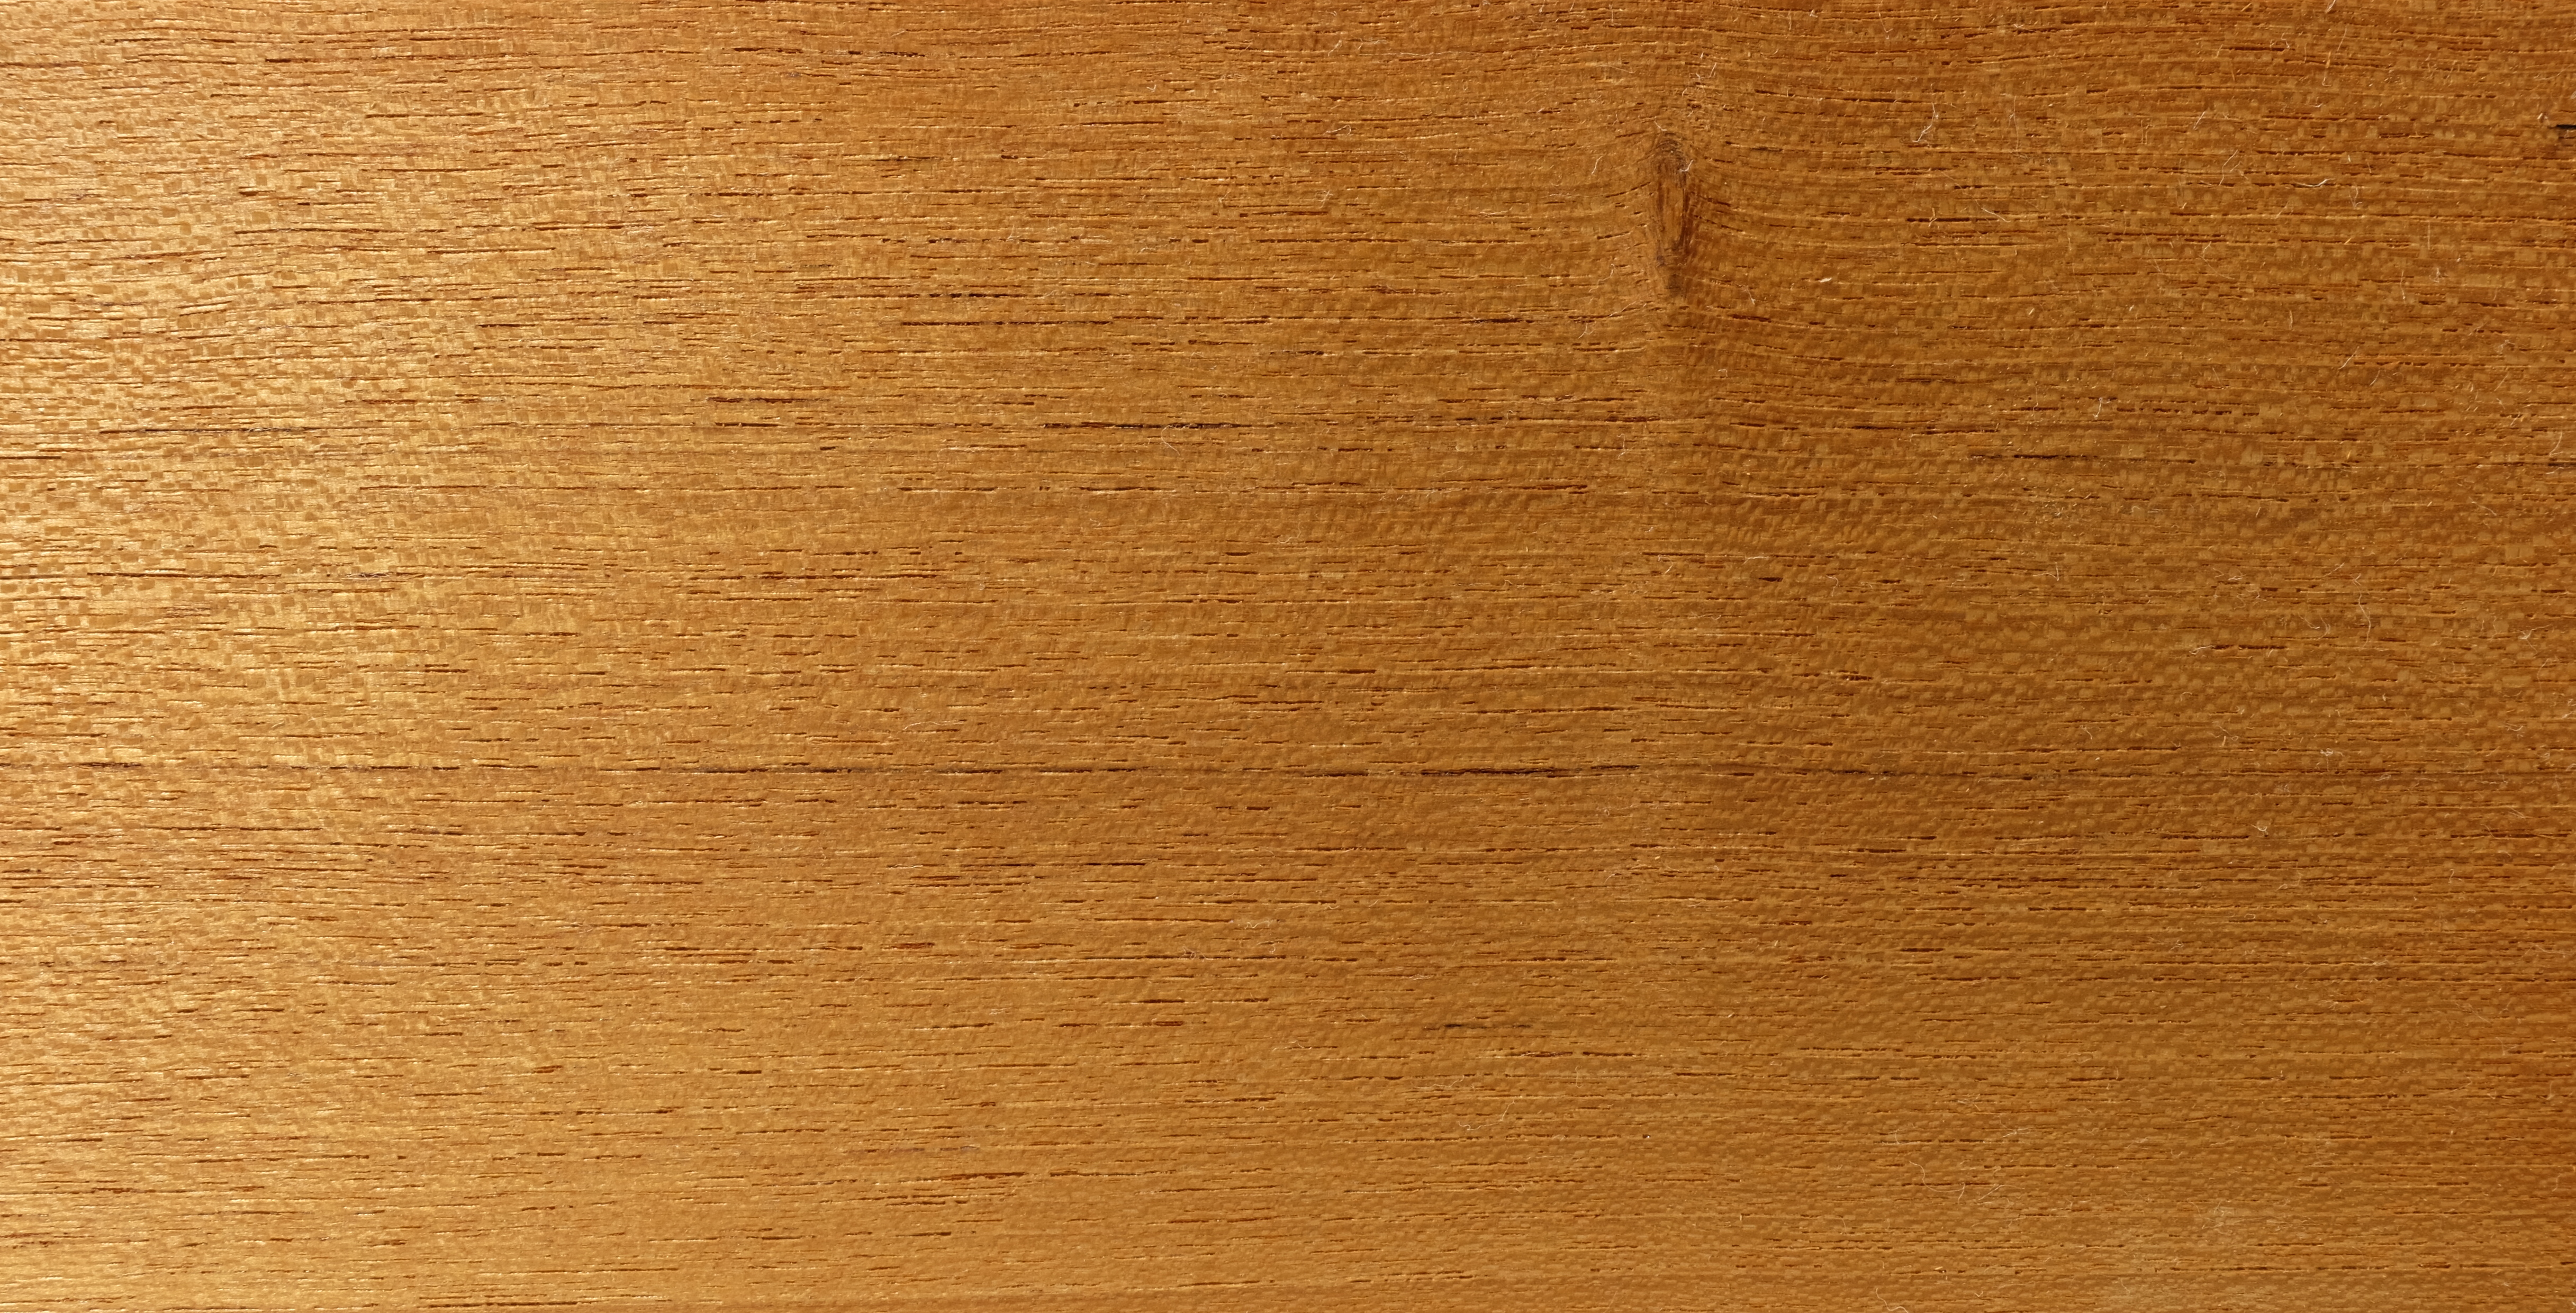 Teakholz textur  File:Teak wood.JPG - Wikimedia Commons